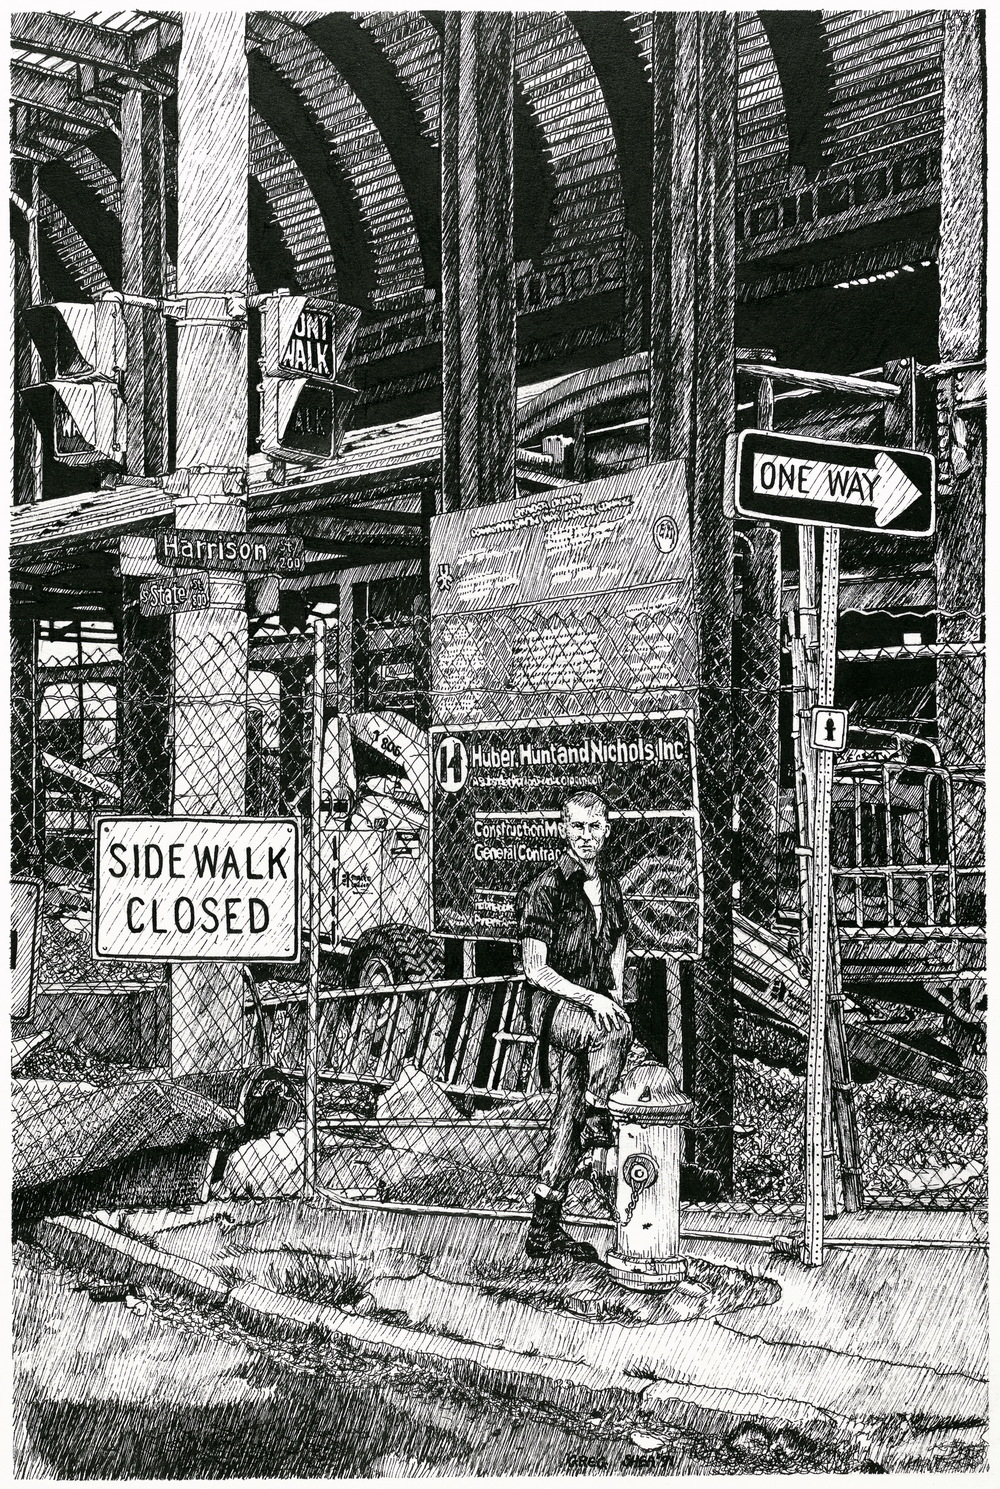 "Signs of New Construction  , 1991. Ink on board, approx. 15 x 20"". Available for purchase."